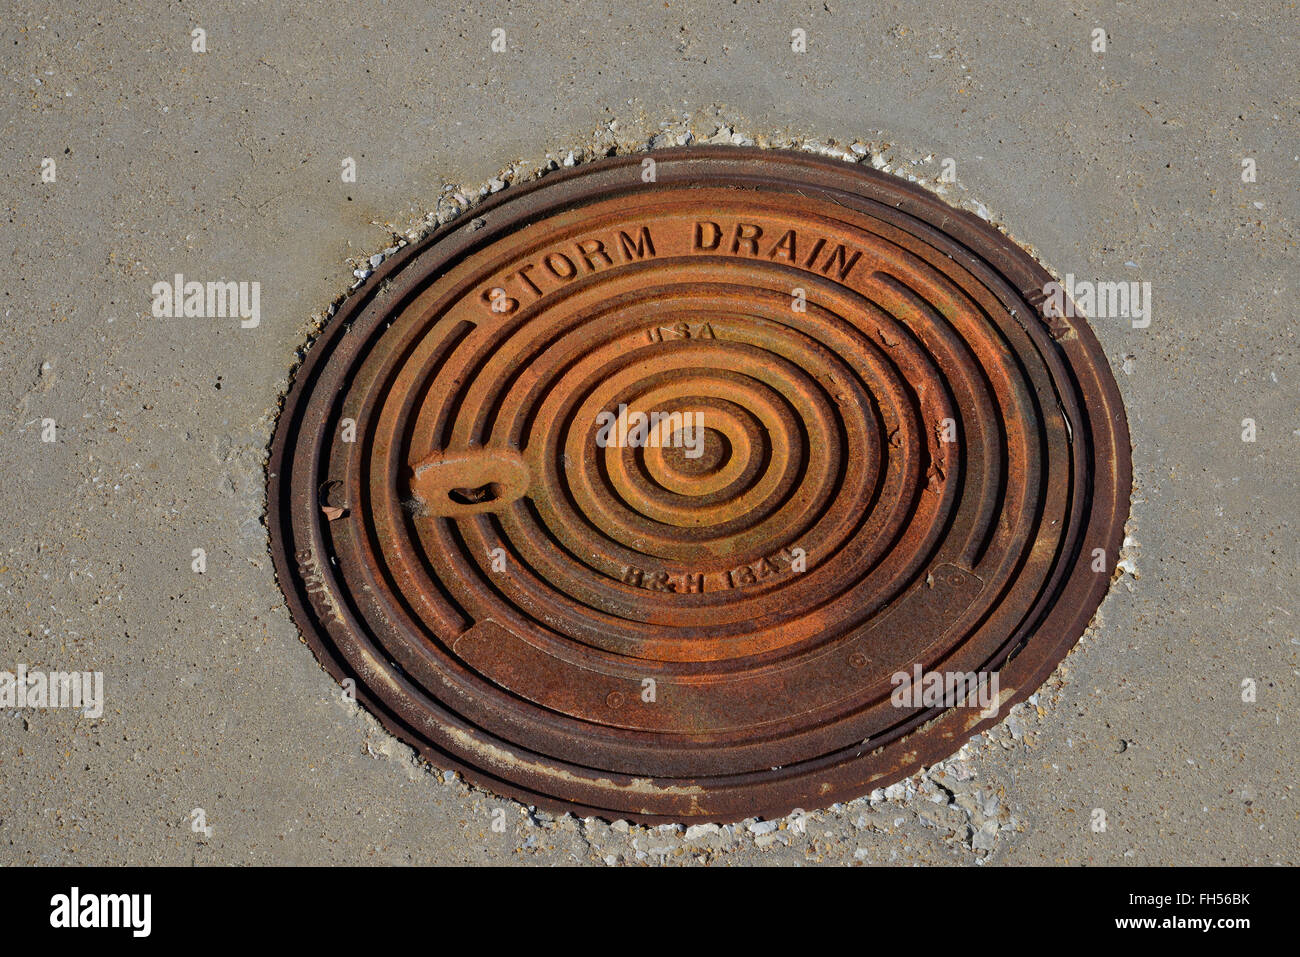 Sewer lids, utility access, drain covers, water meter access - Stock Image